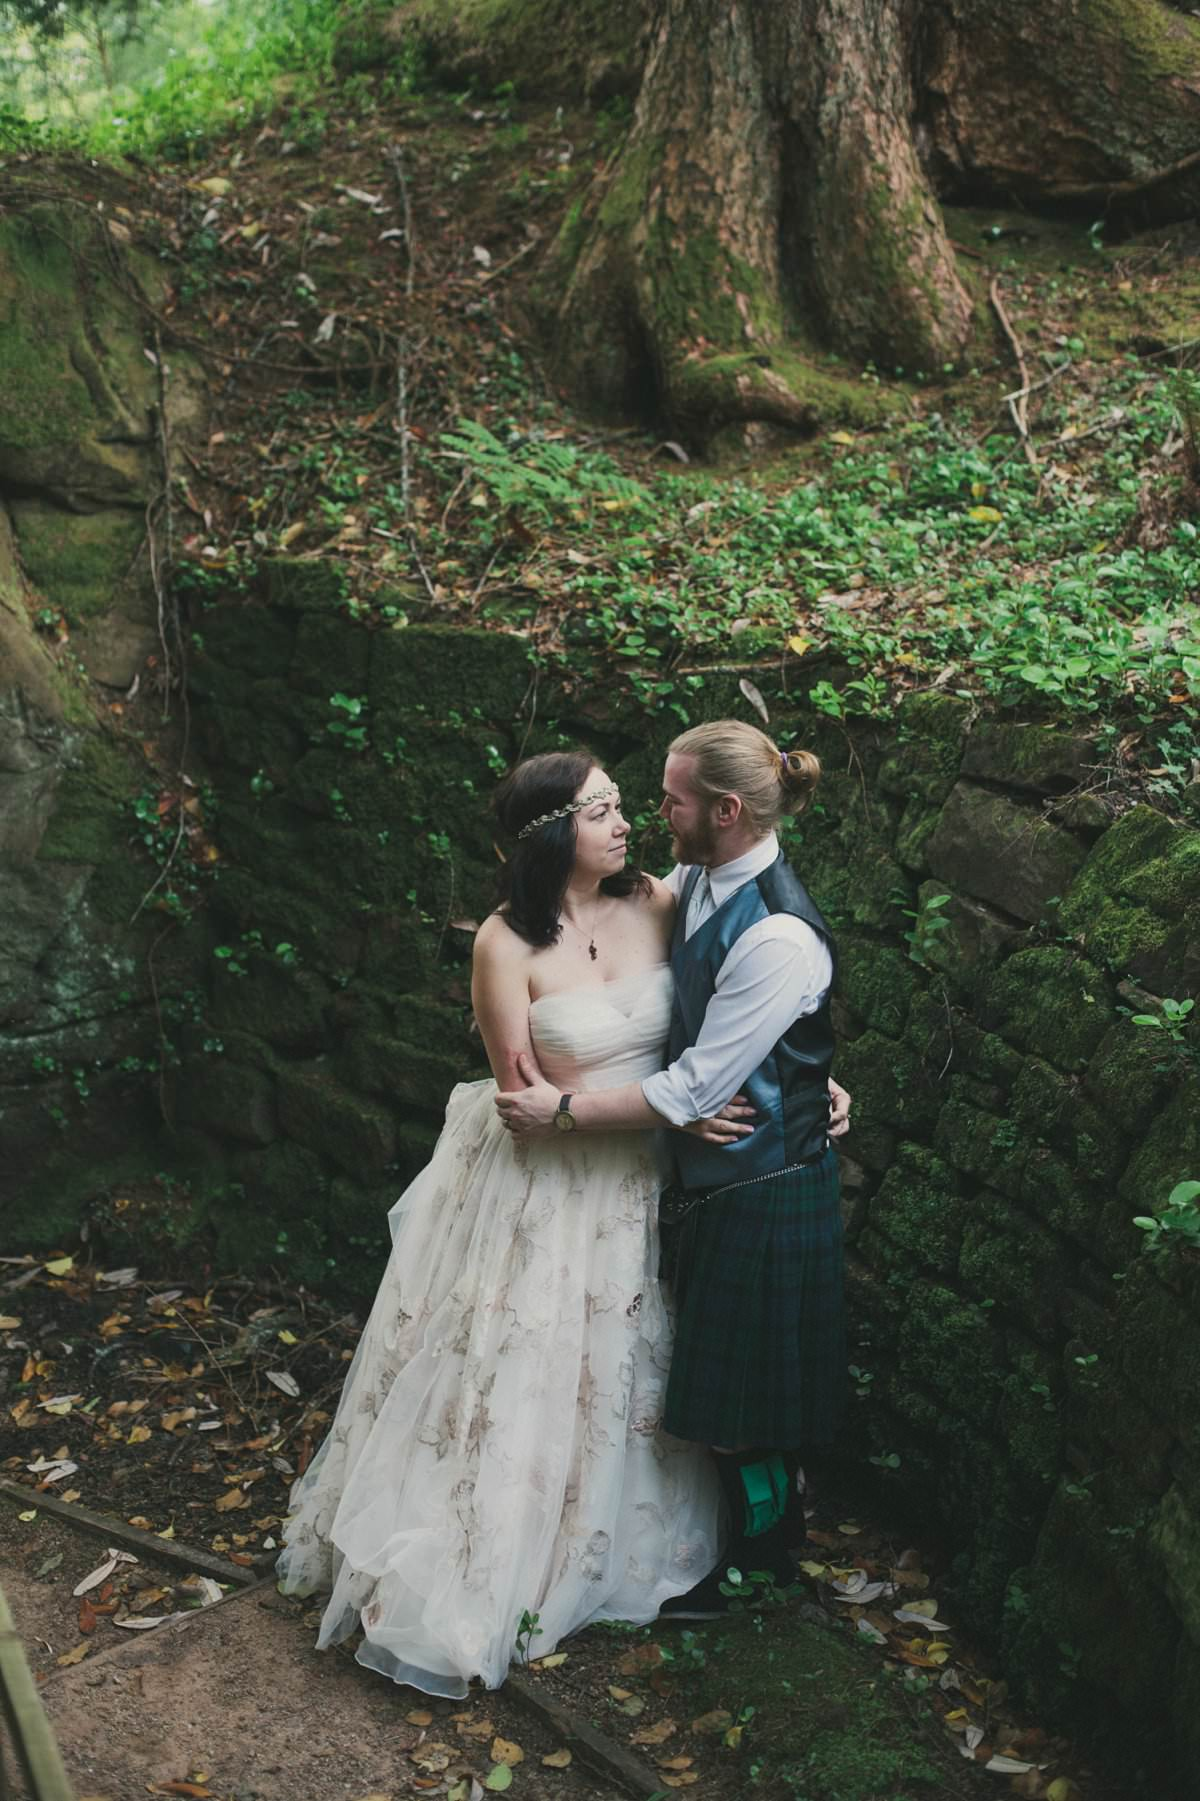 Bride and groom looking at eachother in grounds of Brodick Castle The Isle of Arran Scotland during elopement wedding